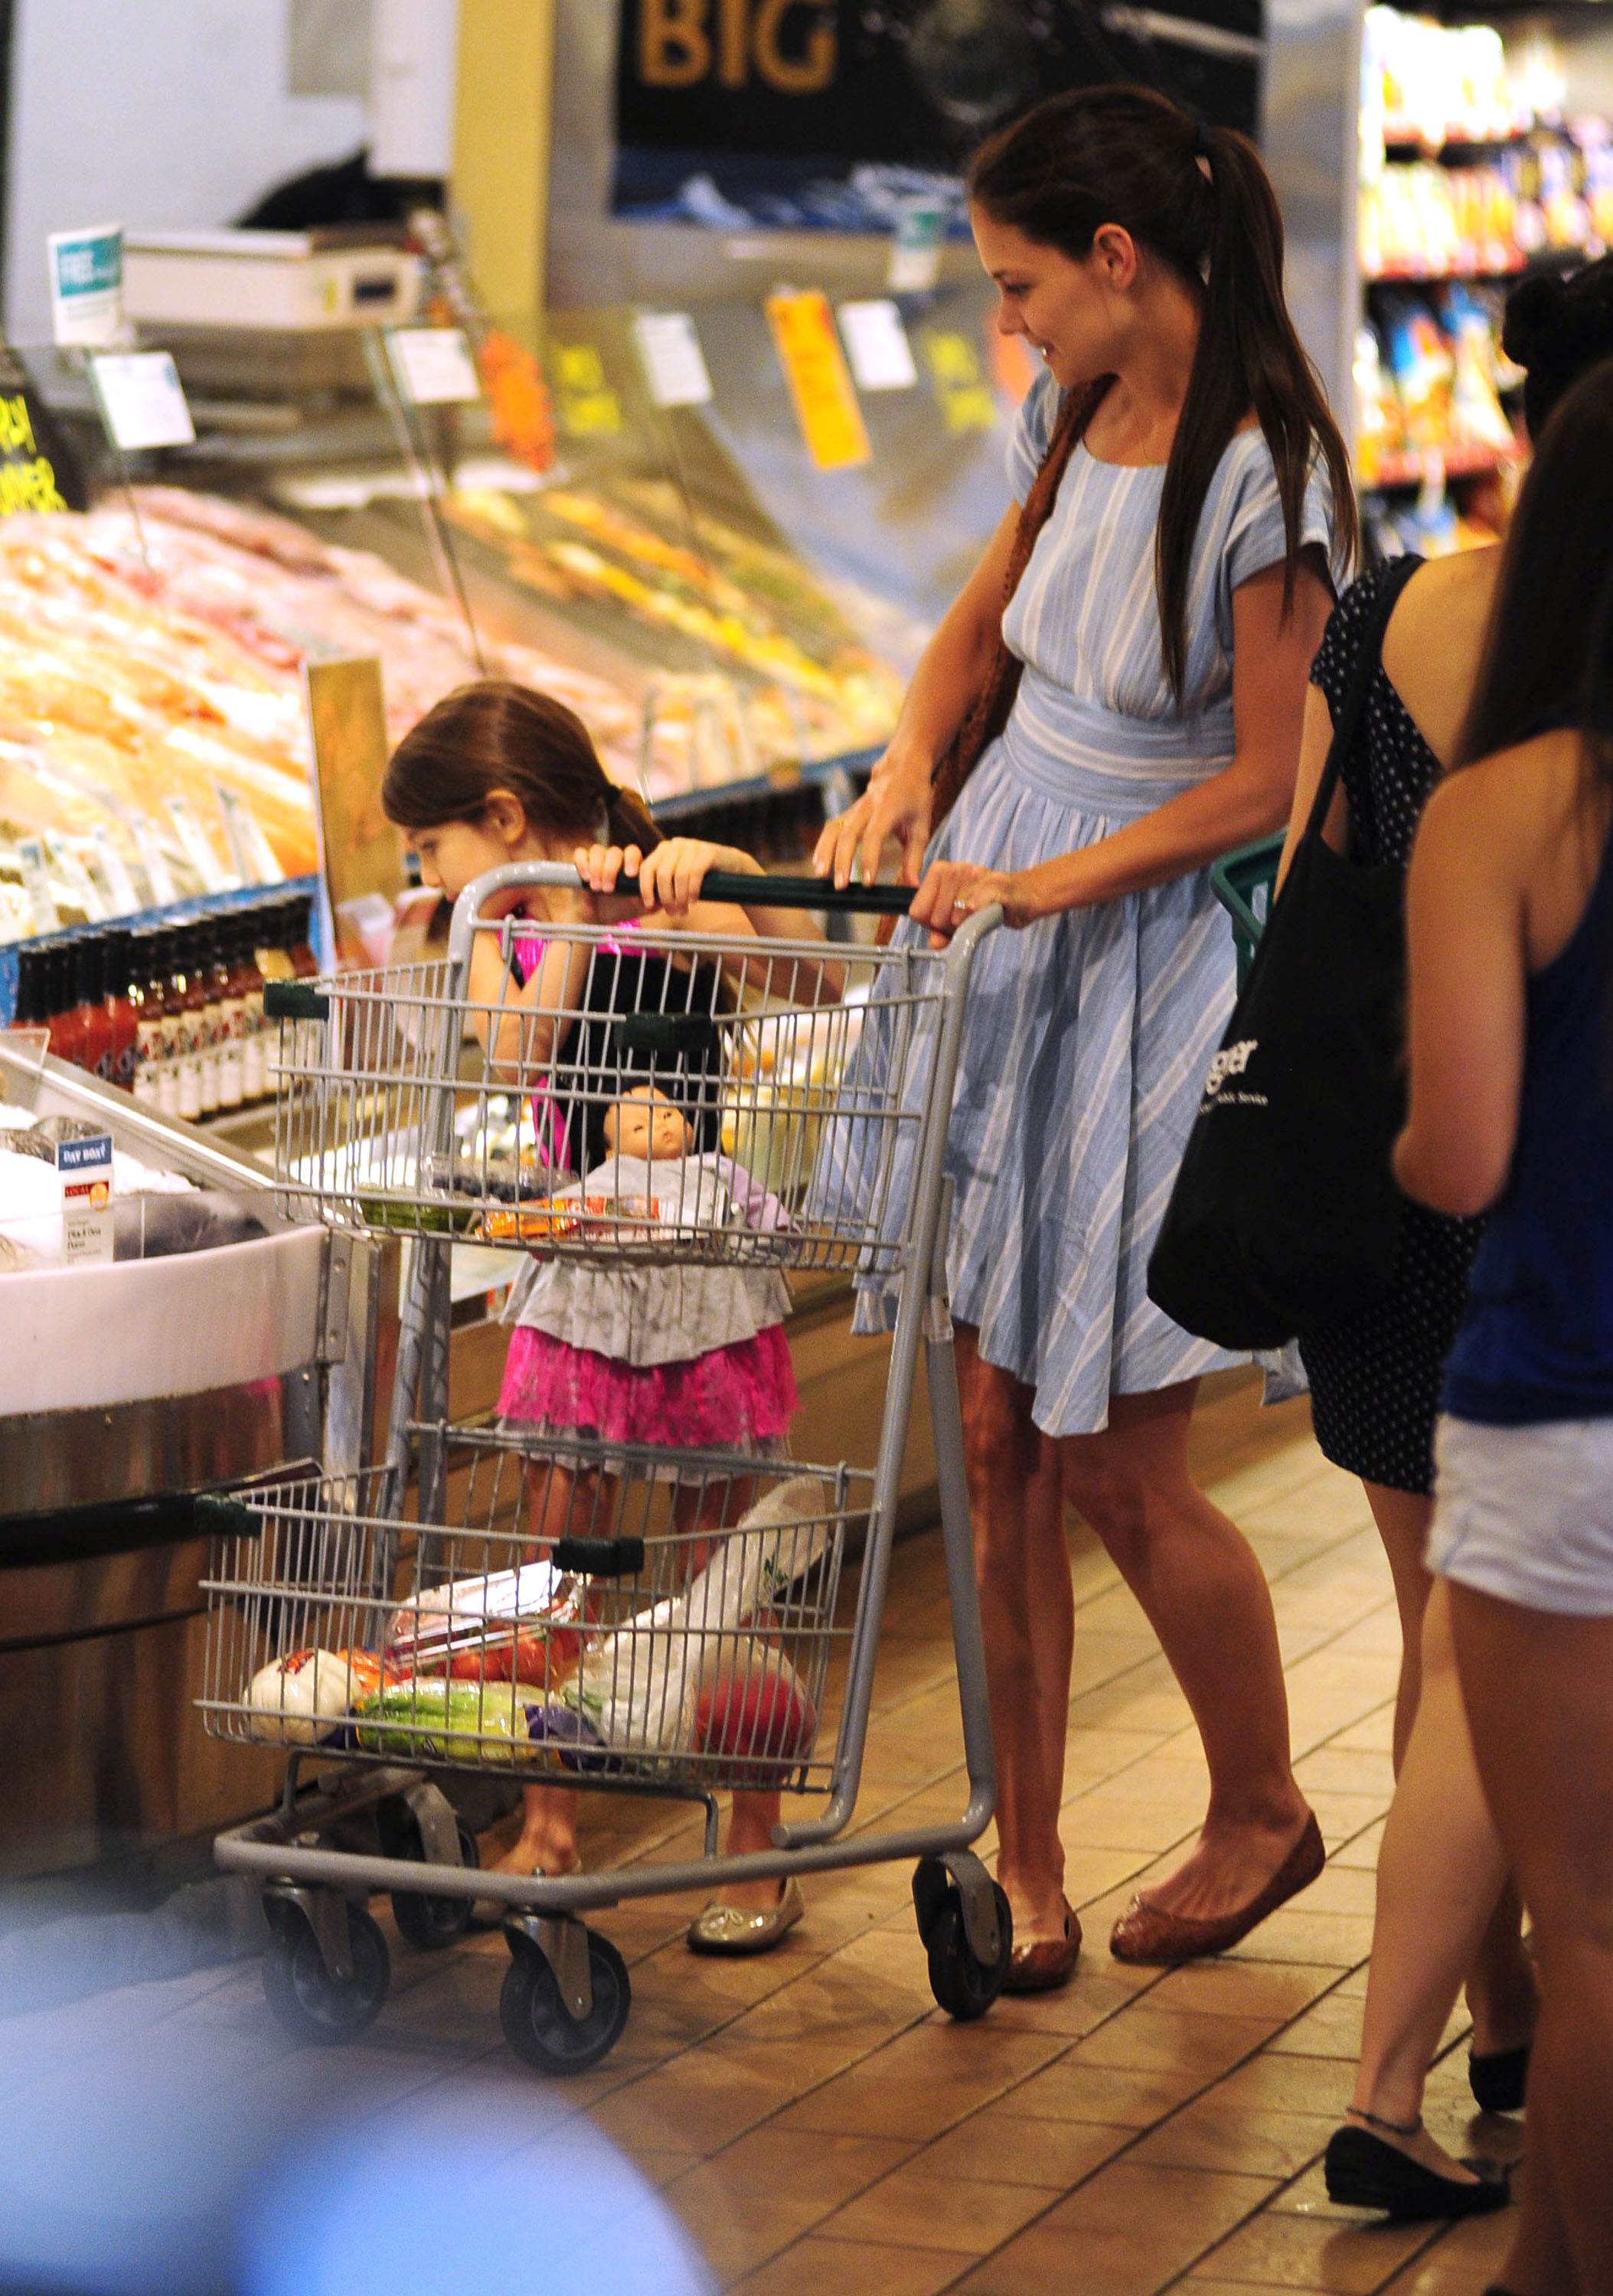 Katie Holmes and Suri Cruise went grocery shopping at